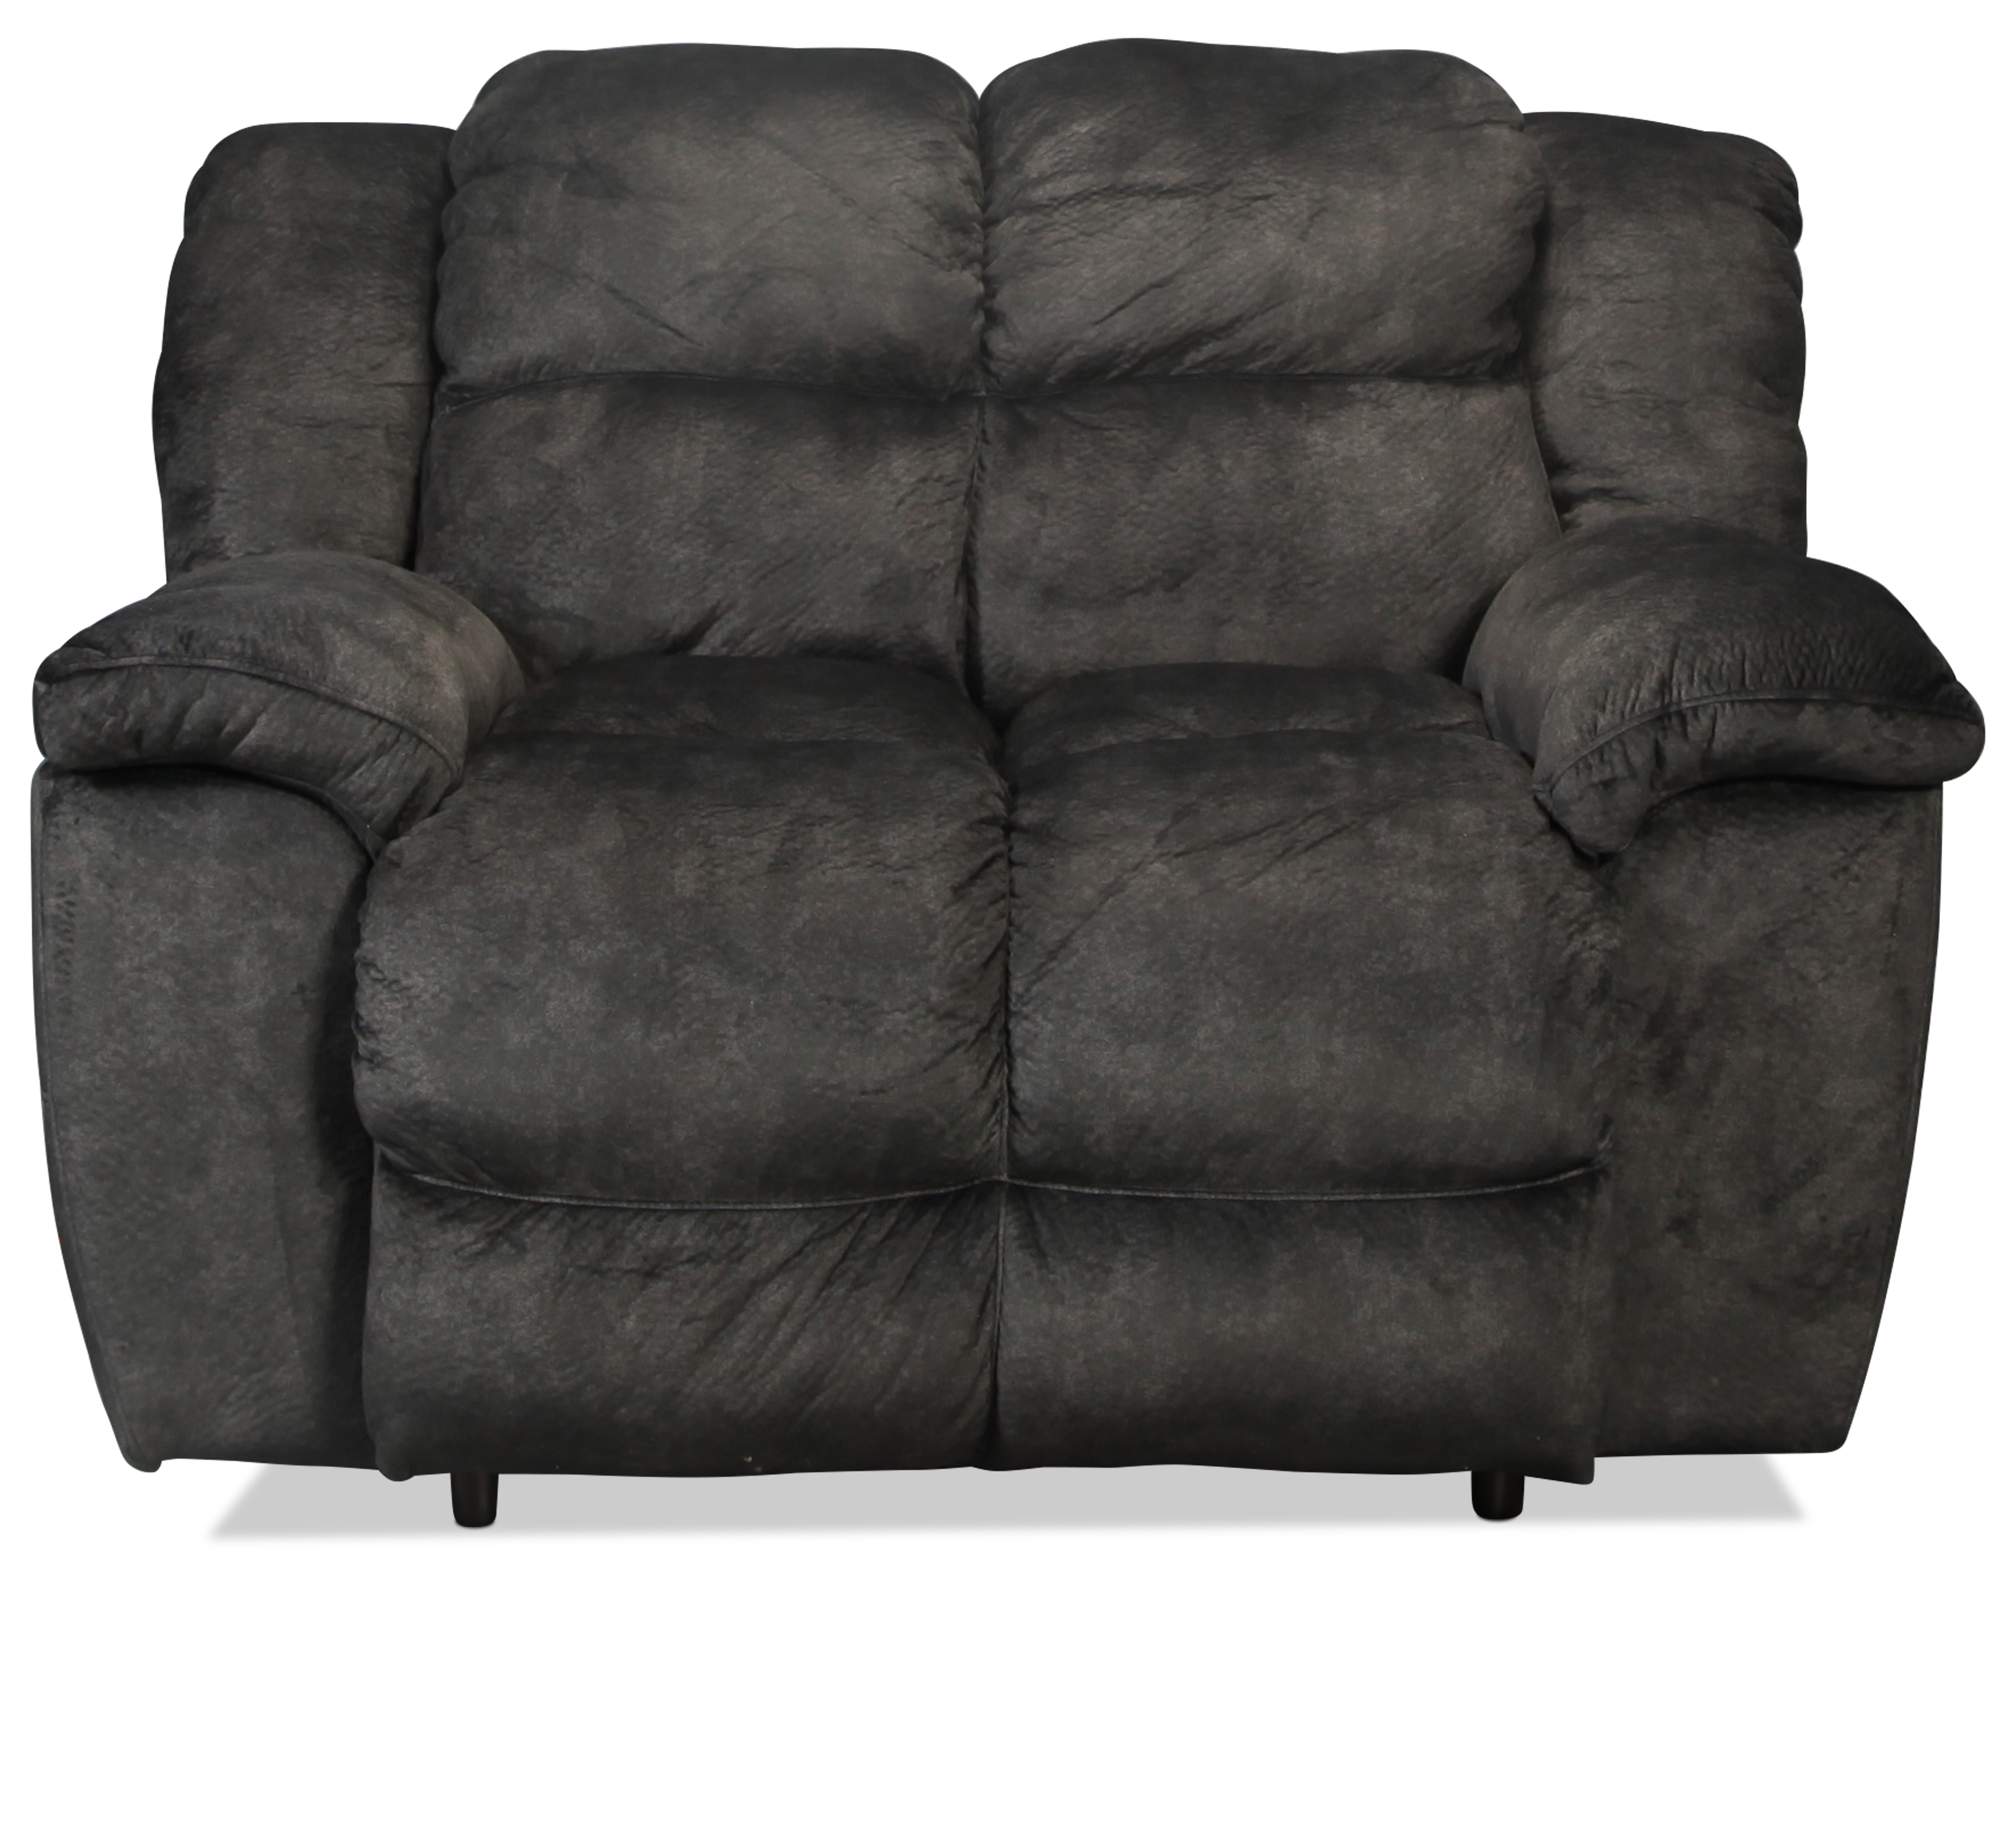 Braylon Recliner - Charcoal